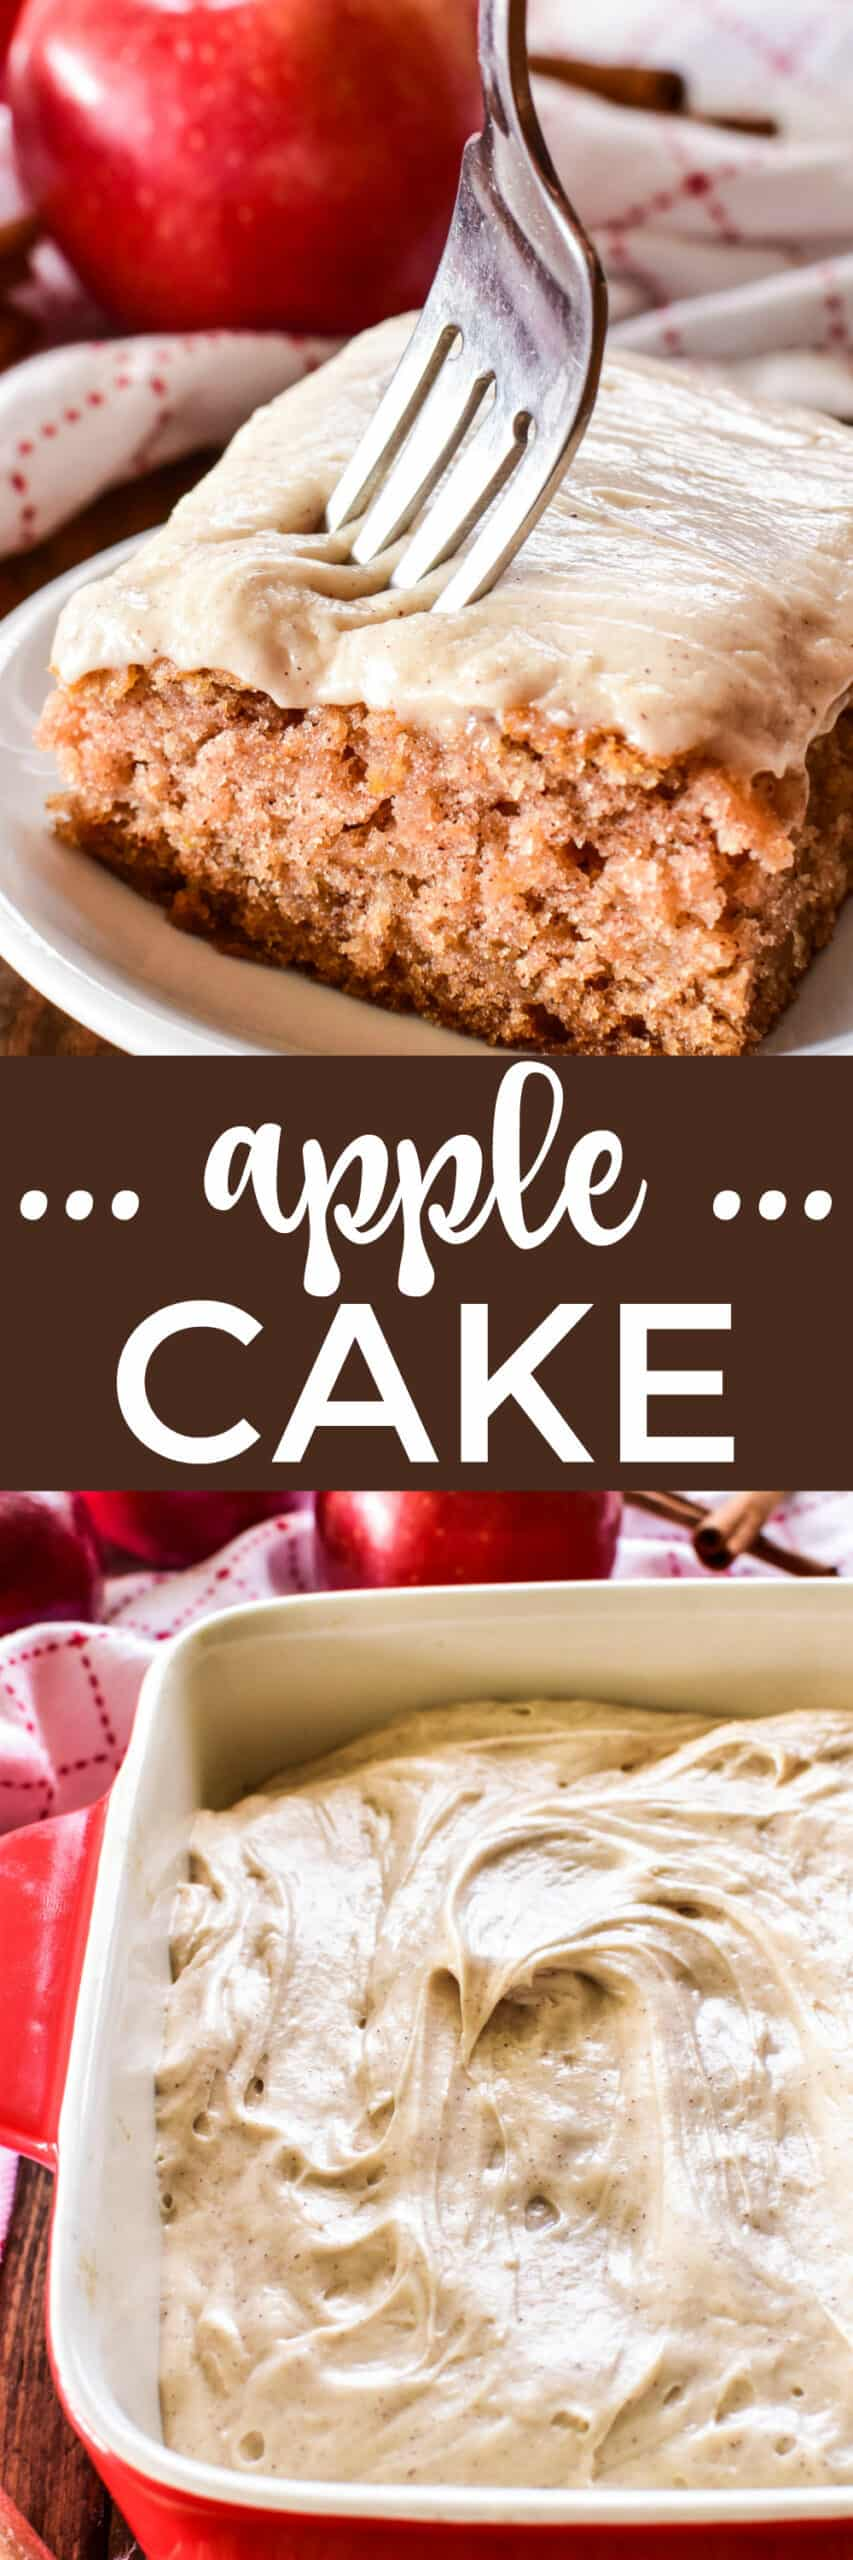 Apple Cake collage image